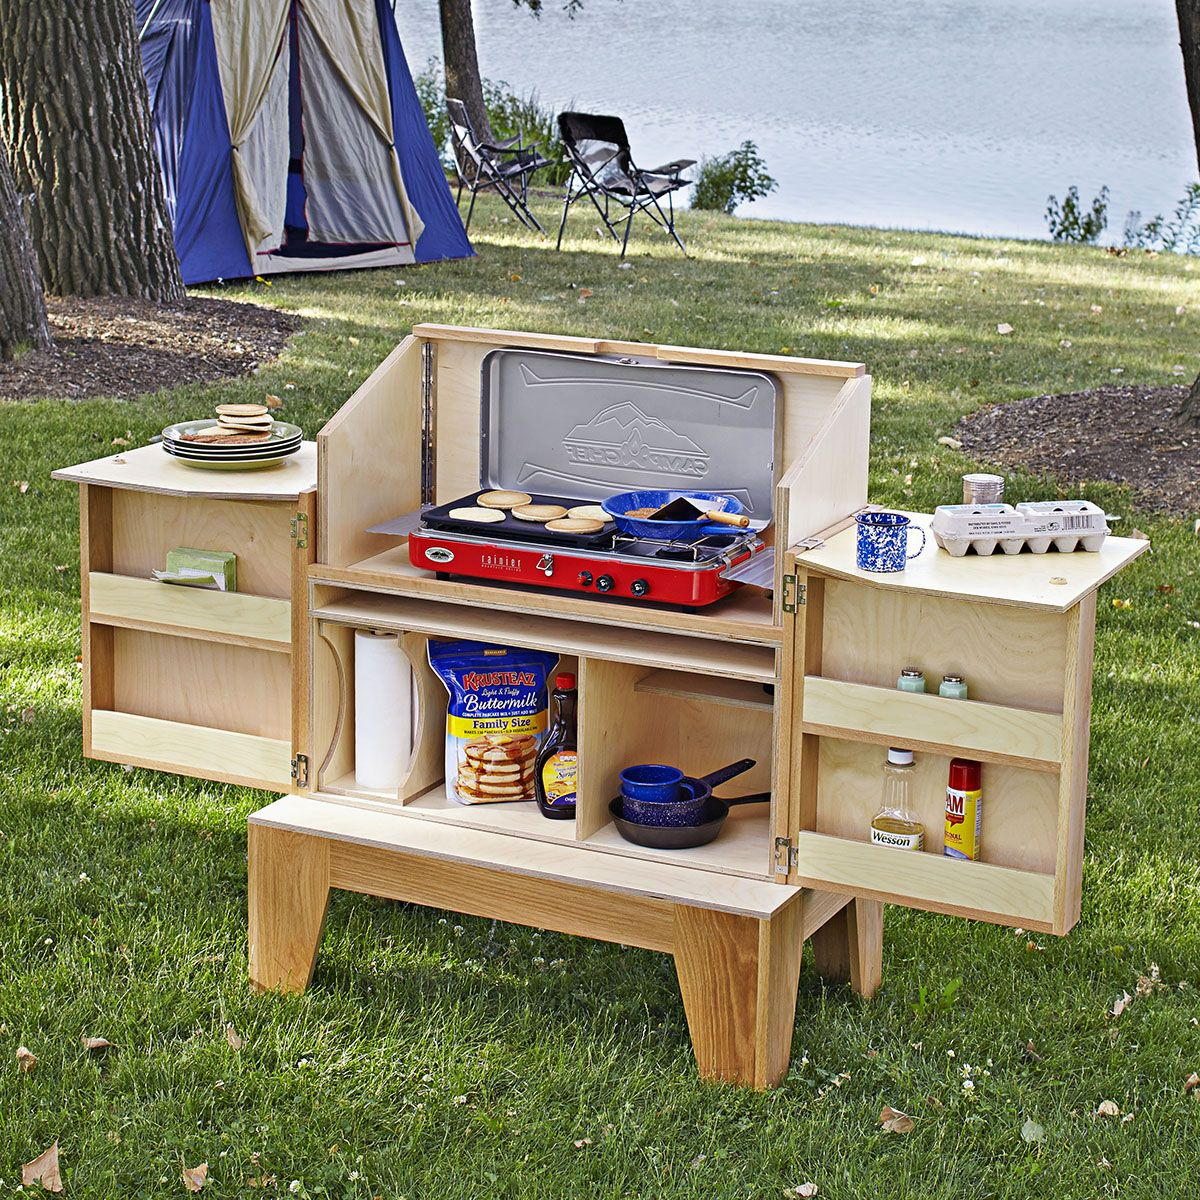 Pinterest Kitchen Set: Best 25+ Camping Kitchen Set Up Ideas On Pinterest